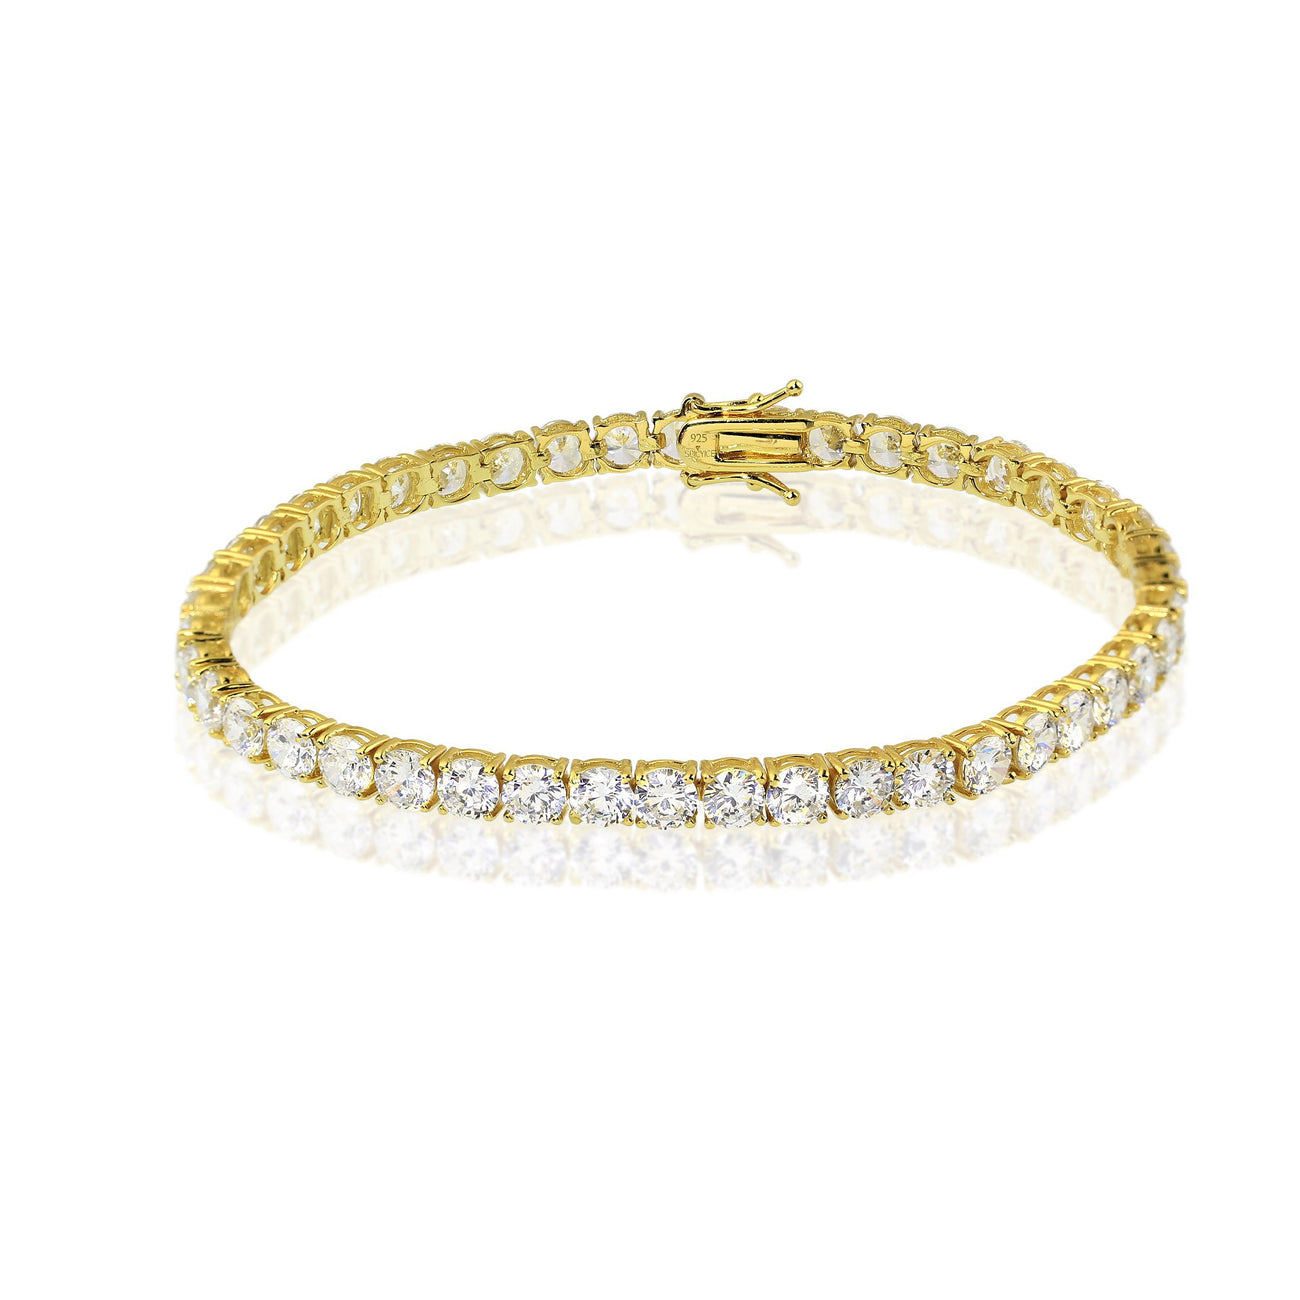 Bracelet - 5mm Single Row Tennis Bracelet In 18k Gold